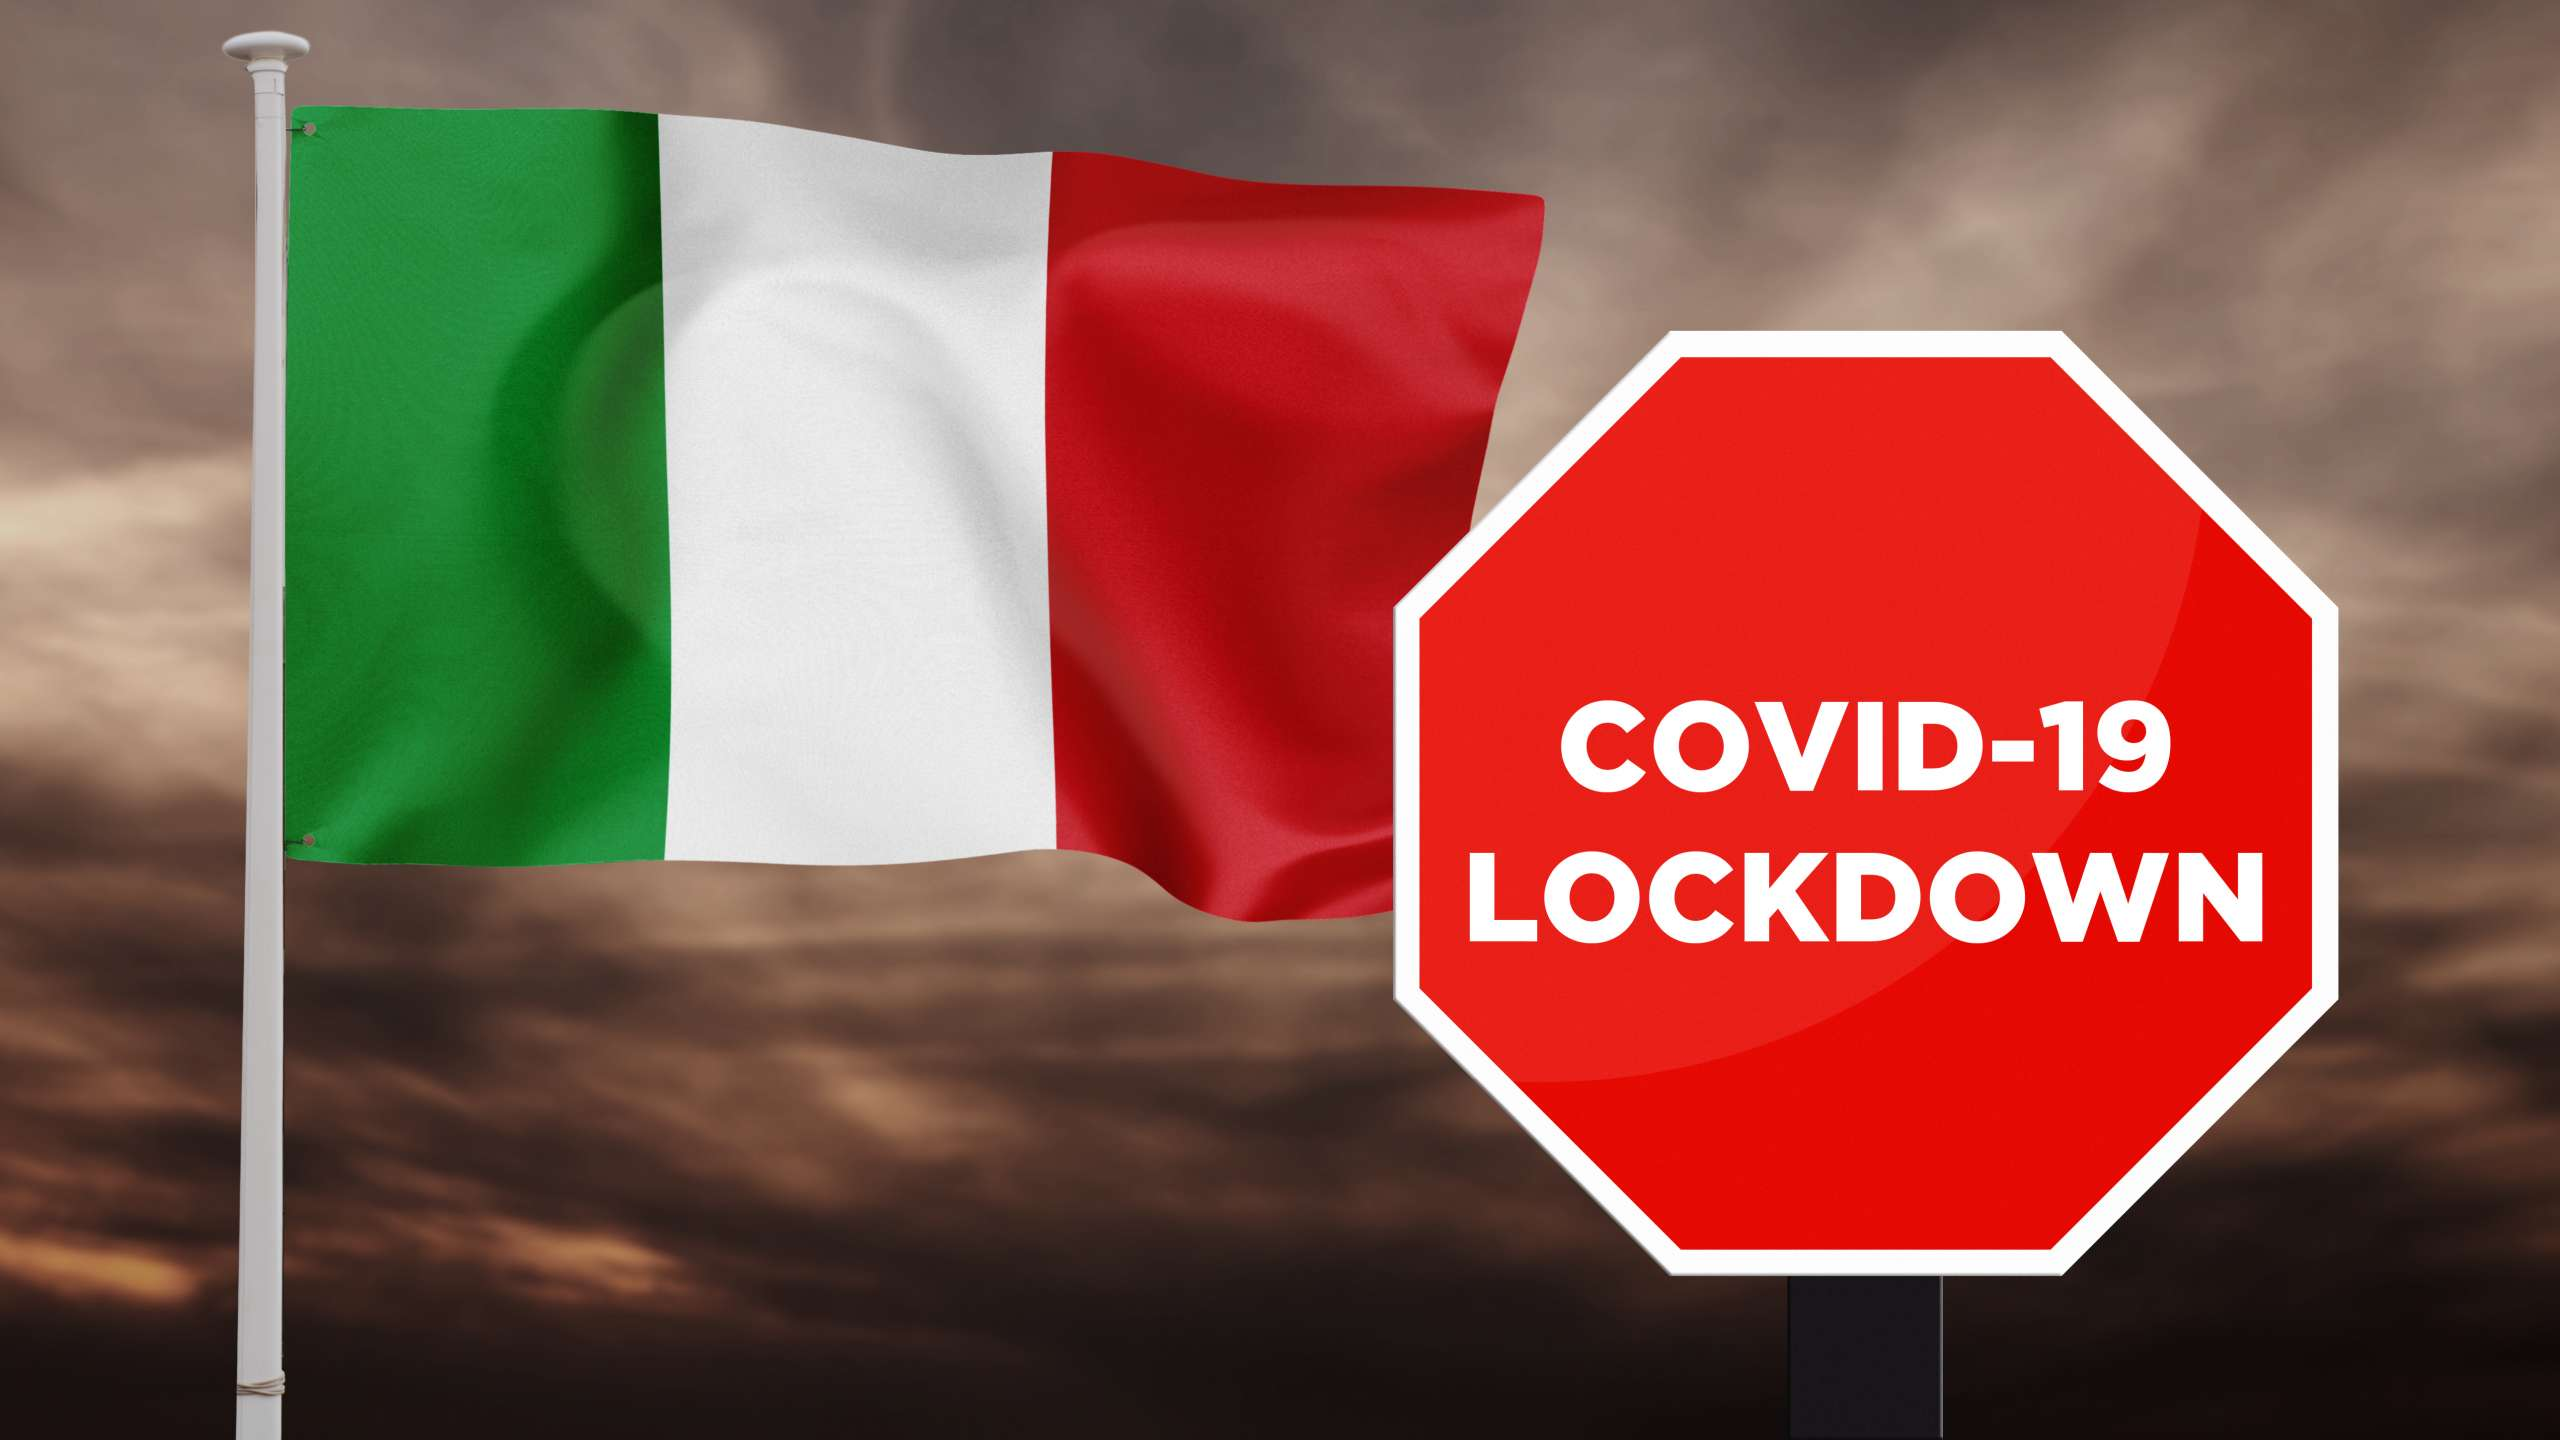 7 Things I Learned About Covid-19 in Italy That Will Happen In the U.S.